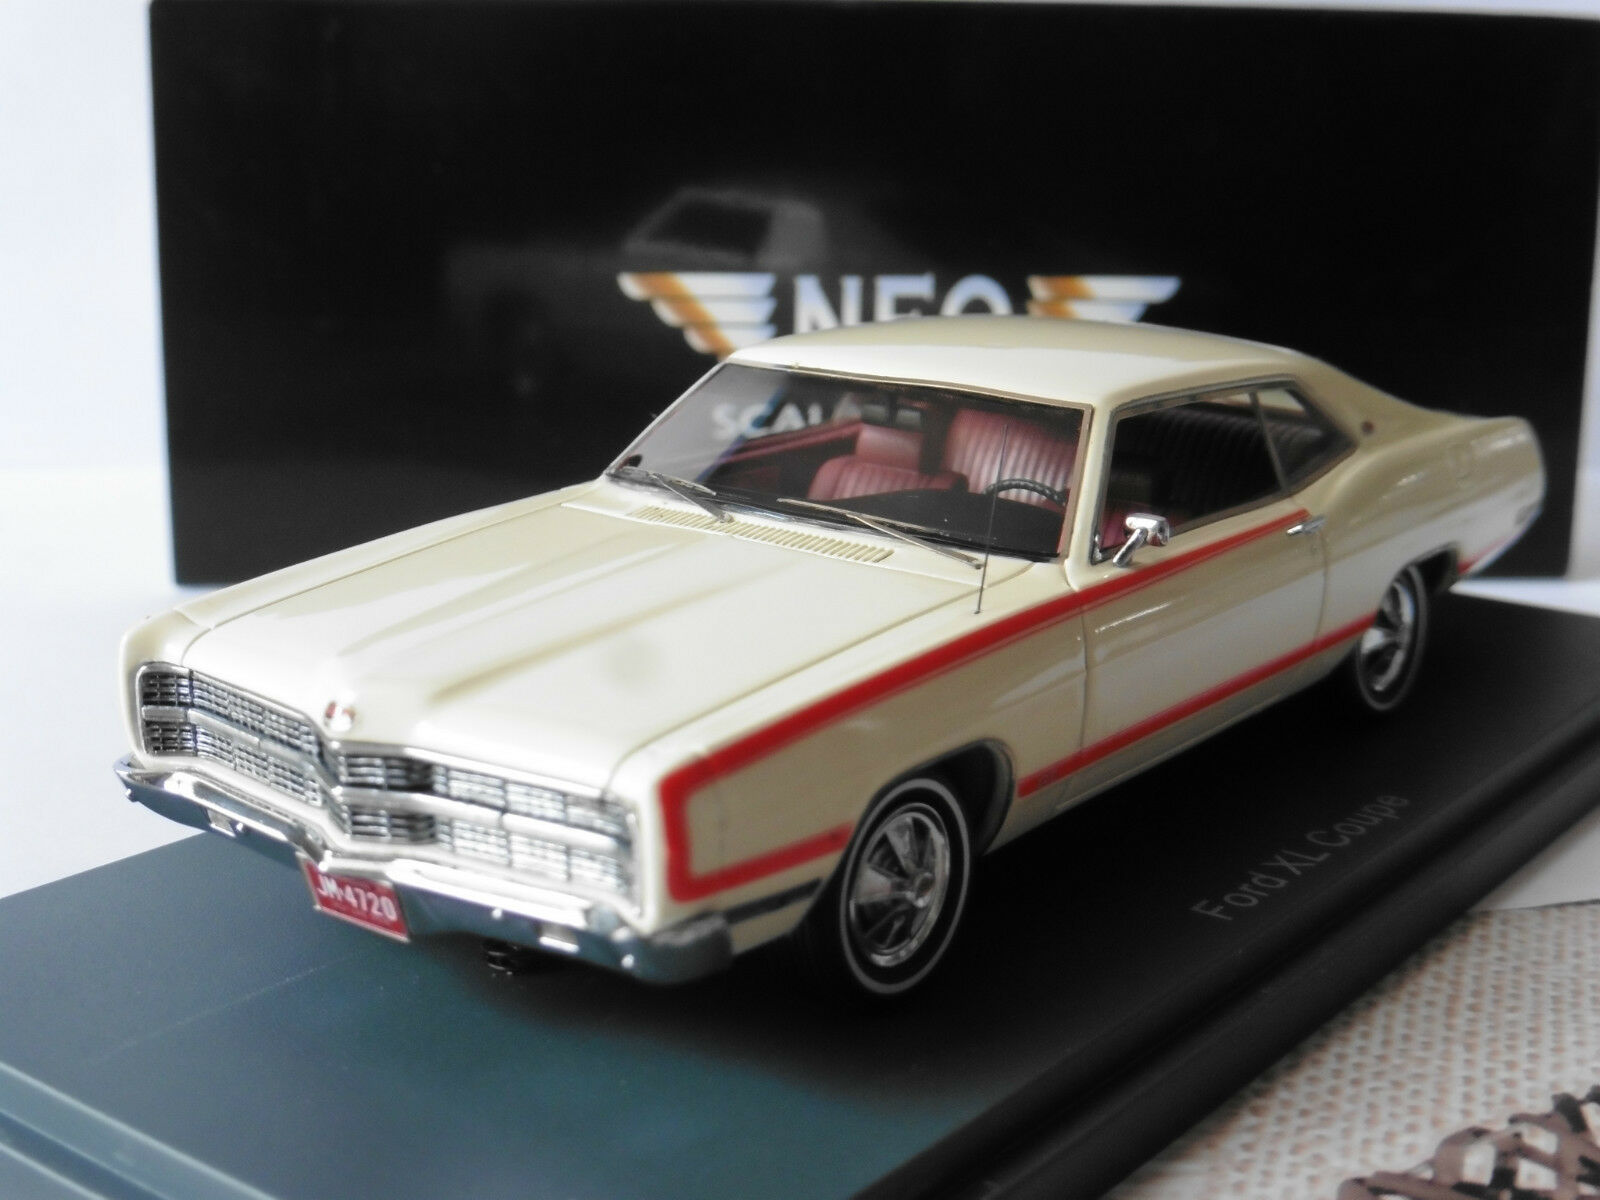 FORD XL COUPE 1969 bianca NEO 44720 1 43 WEISS BIANCA HARDTOP biancaHE bianca